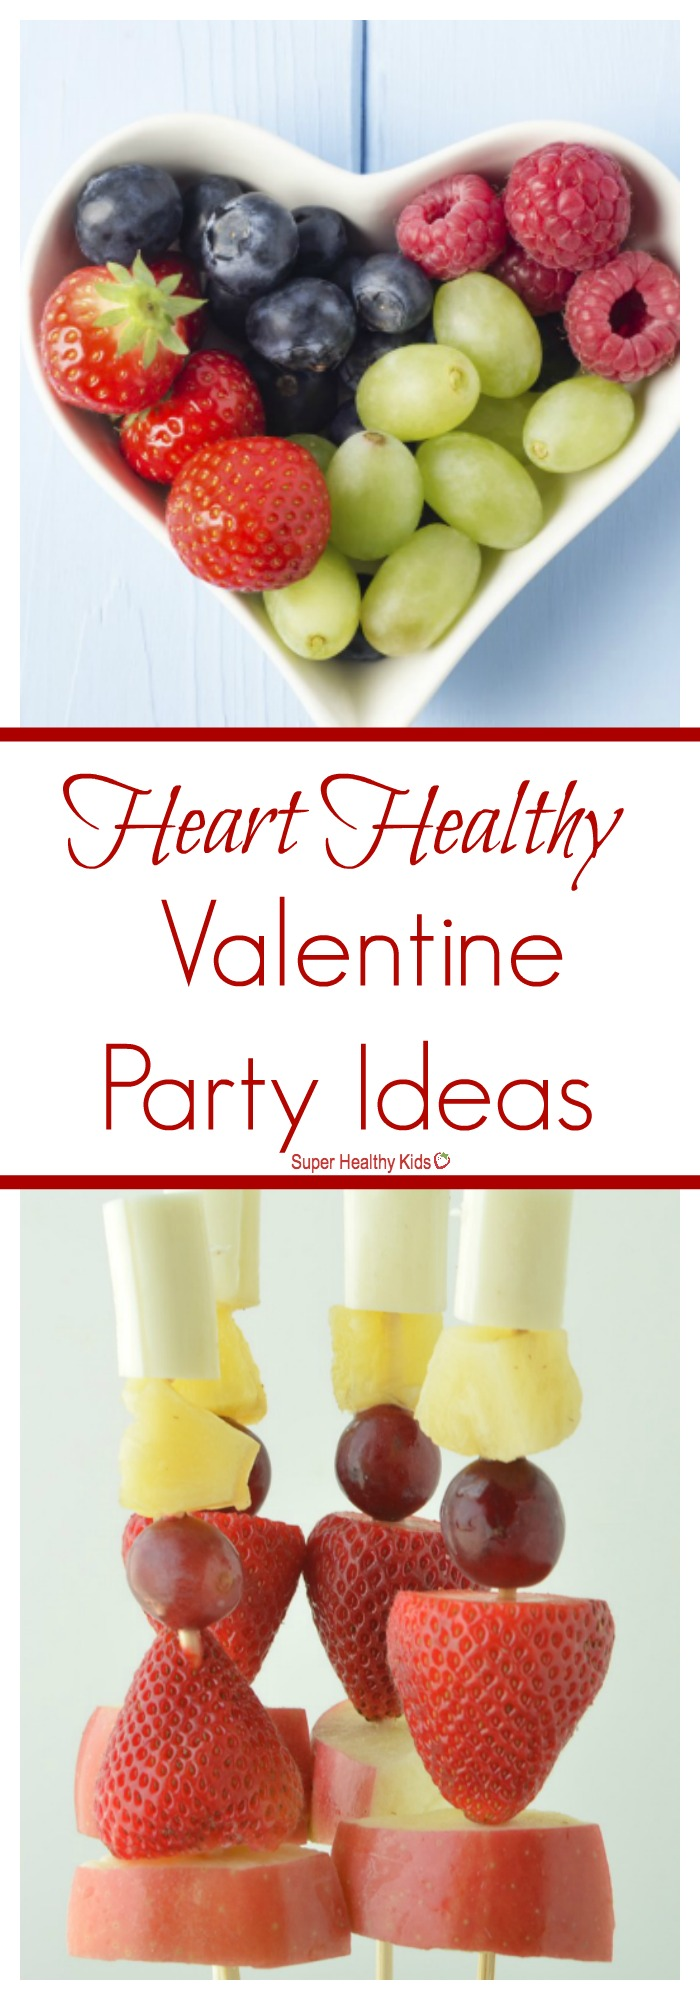 BIRTHDAY/PARTIES. Heart Healthy Valentine Party Ideas. Healthy ways to celebrate Valentine's day! http://www.superhealthykids.com/heart-healthy-valentine-party-ideas/